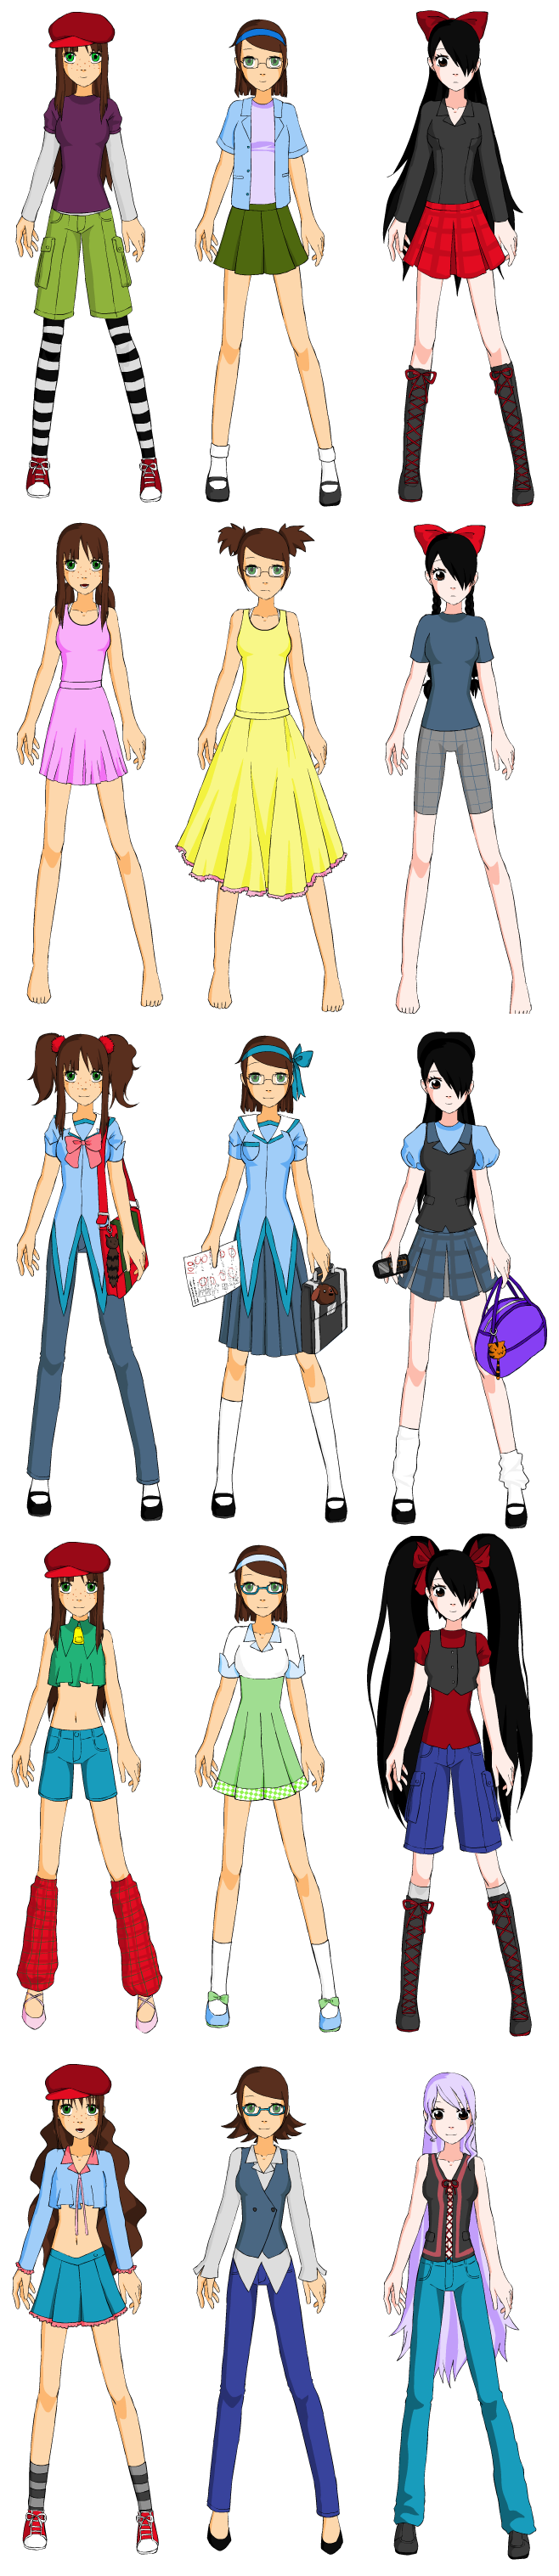 Anime Girl Clothes Designs Dress – Fashion dresses